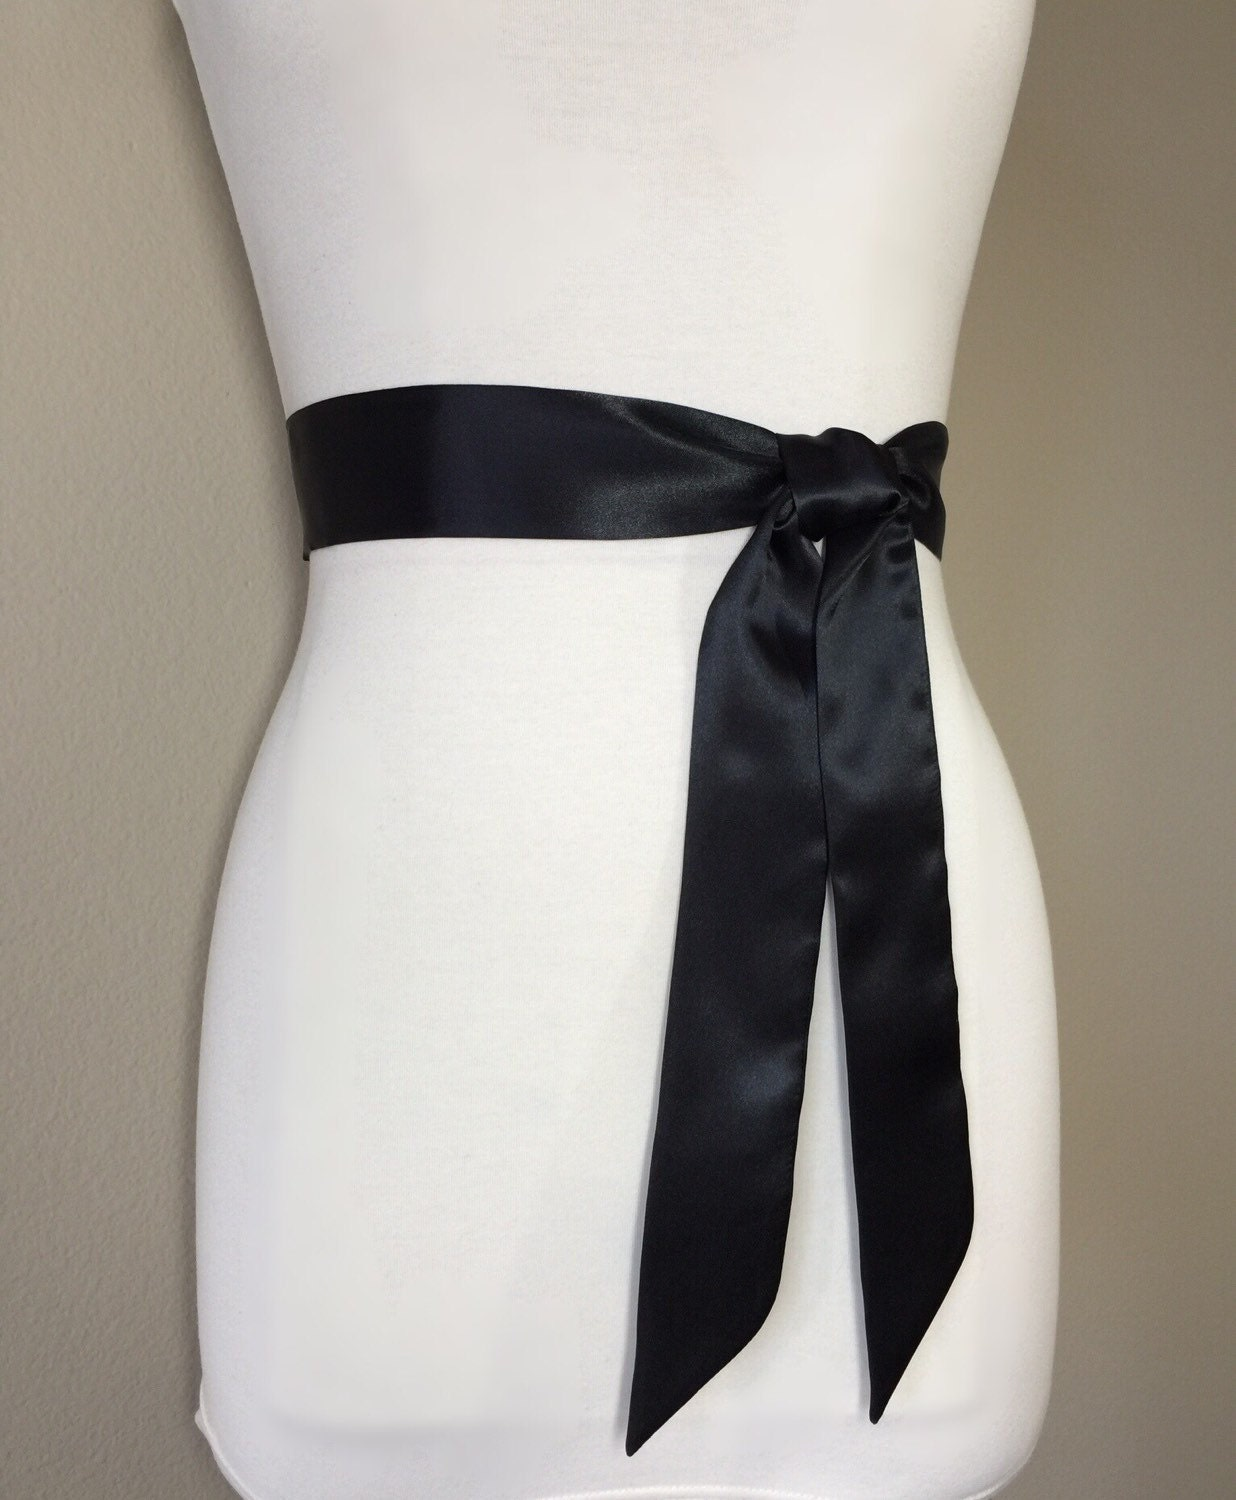 Narrow Black Sash, Black Satin Sash, Black Sash Belt, Bridesmaid ...